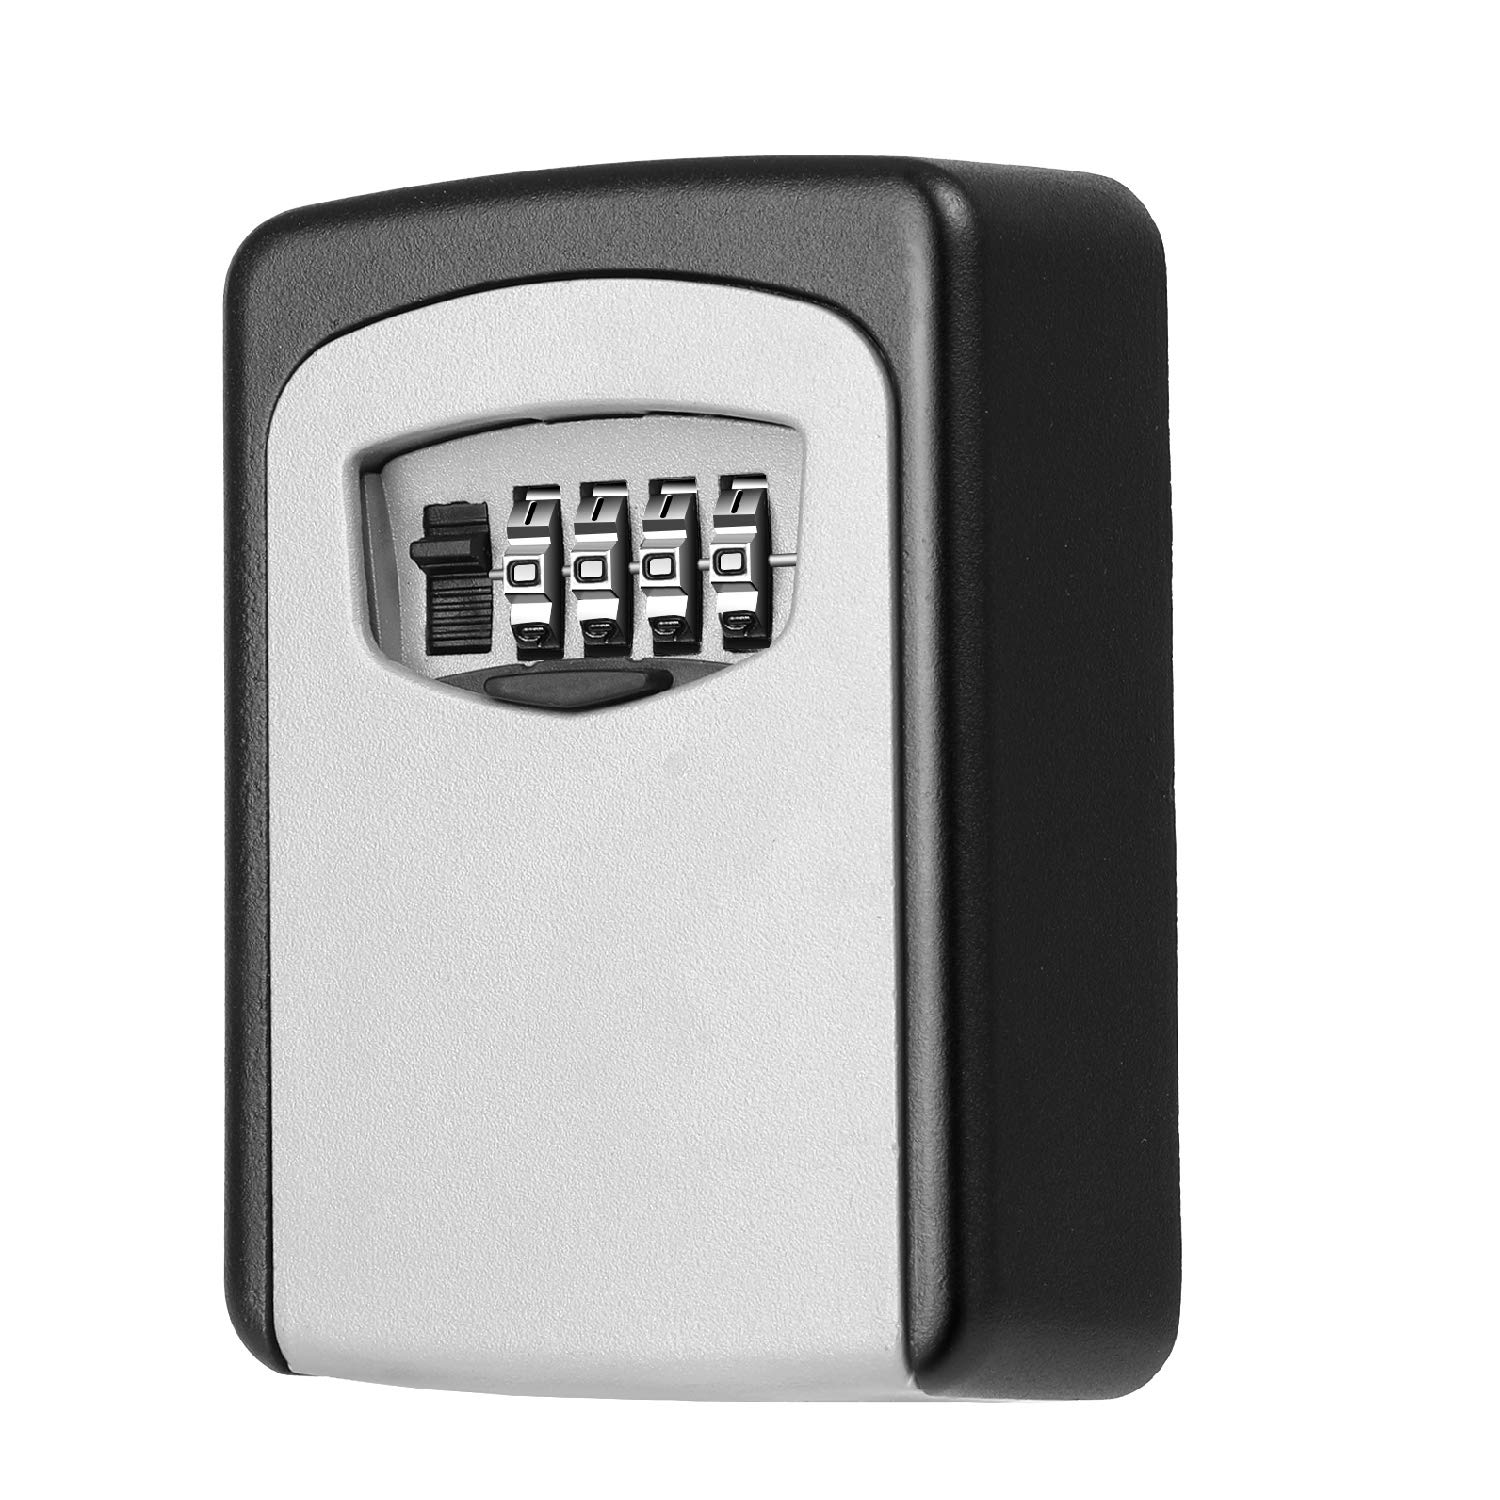 Flexzion Key Lock Box - Key Storage Safe Box Wall Mounted 4 Digit Combination Lock, Security Key Holder/Code Storage Case/Cipher Lock Box for House Indoors or Outdoors Weather Rust Resistant